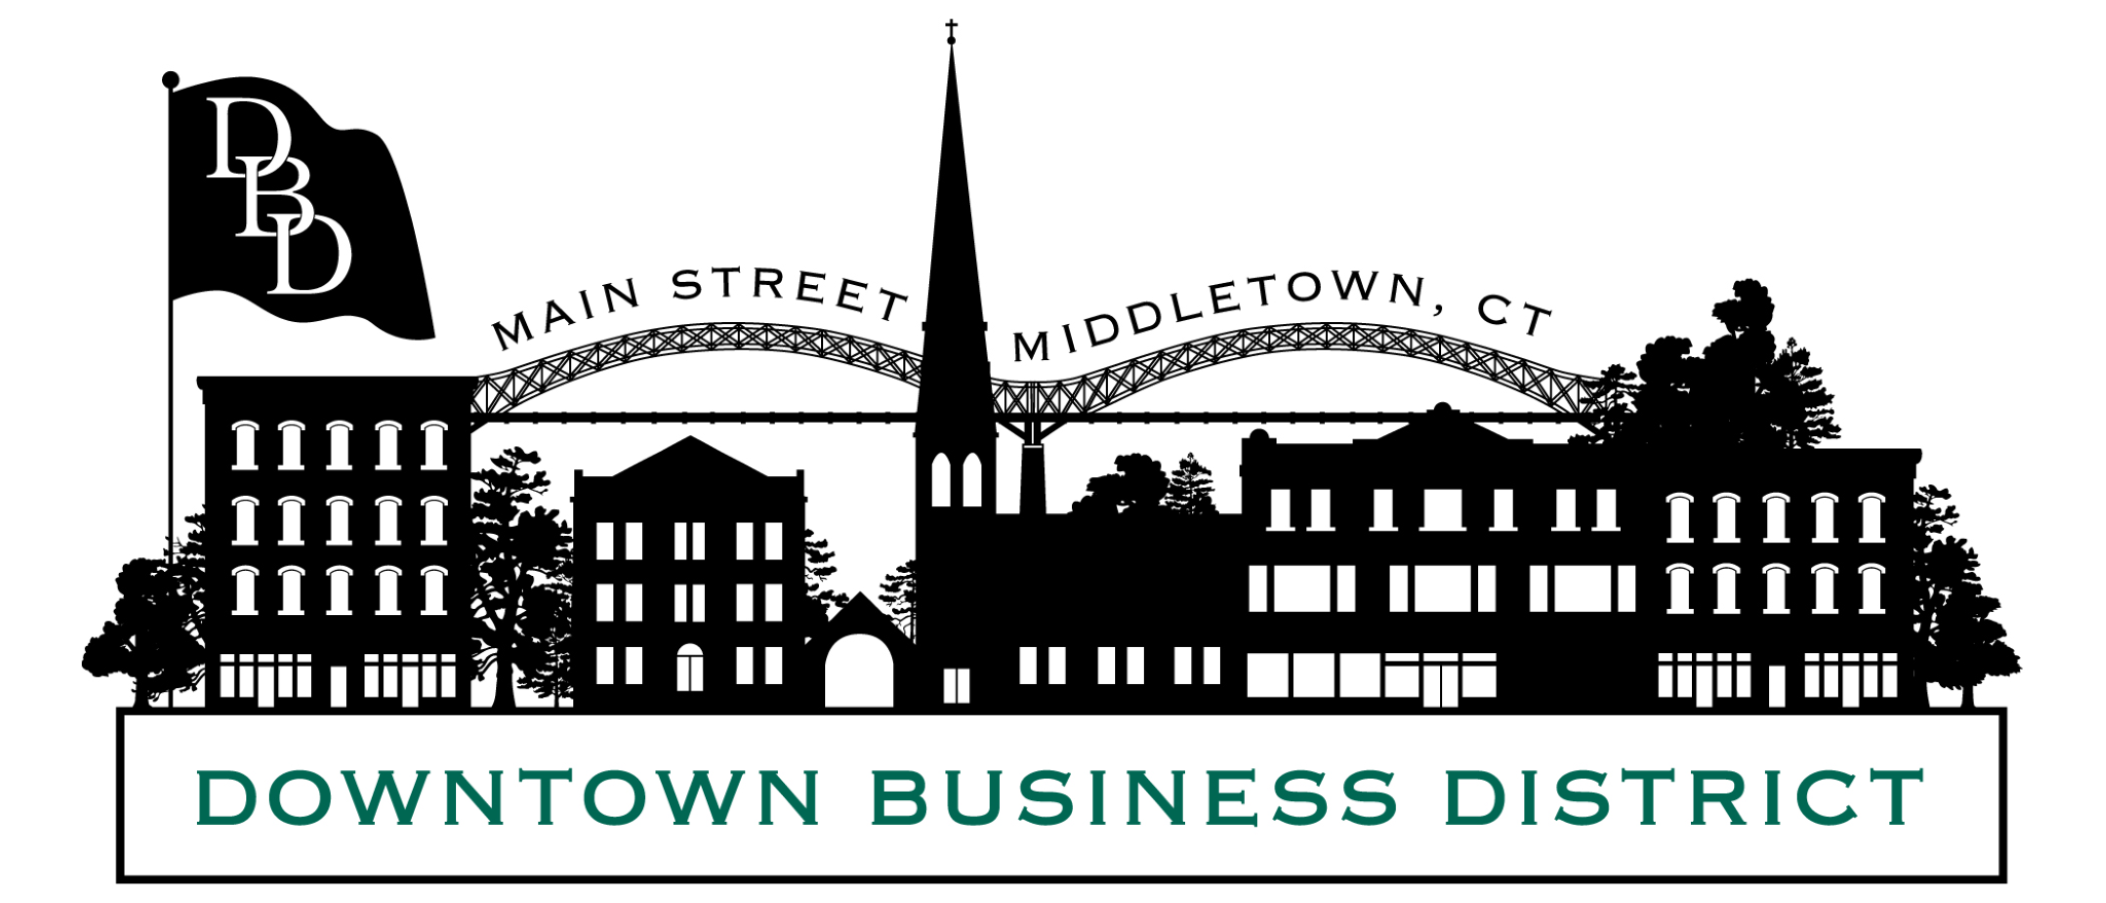 Downtown Business District